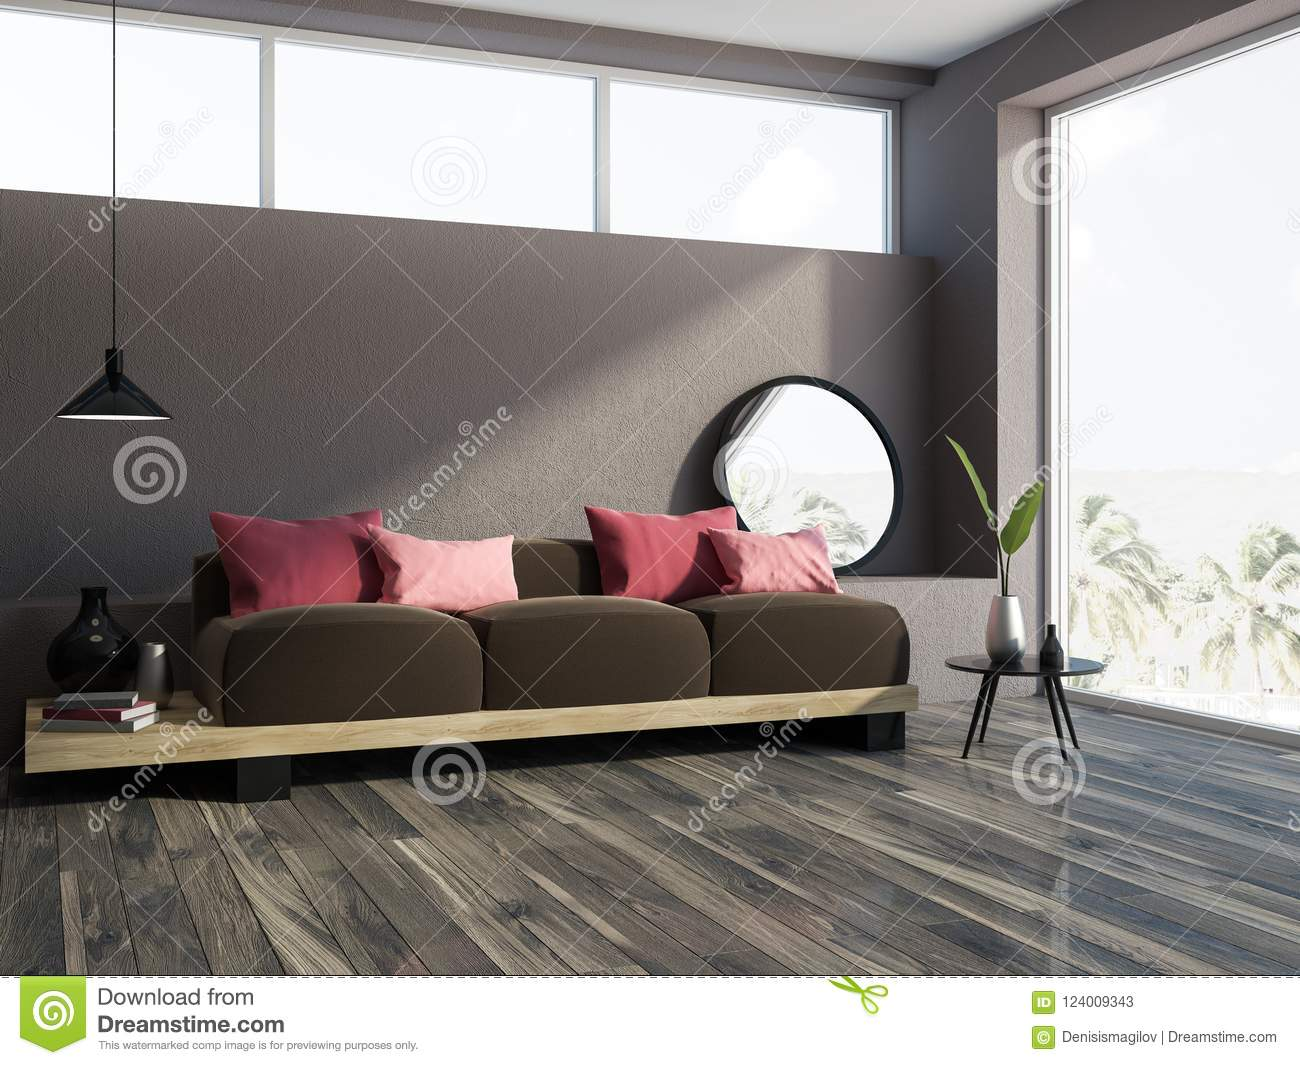 cushions living room small furniture designs brown sofa red corner stock illustration with a wooden floor loft window and long comfortable dark on it 3d rendering mock up